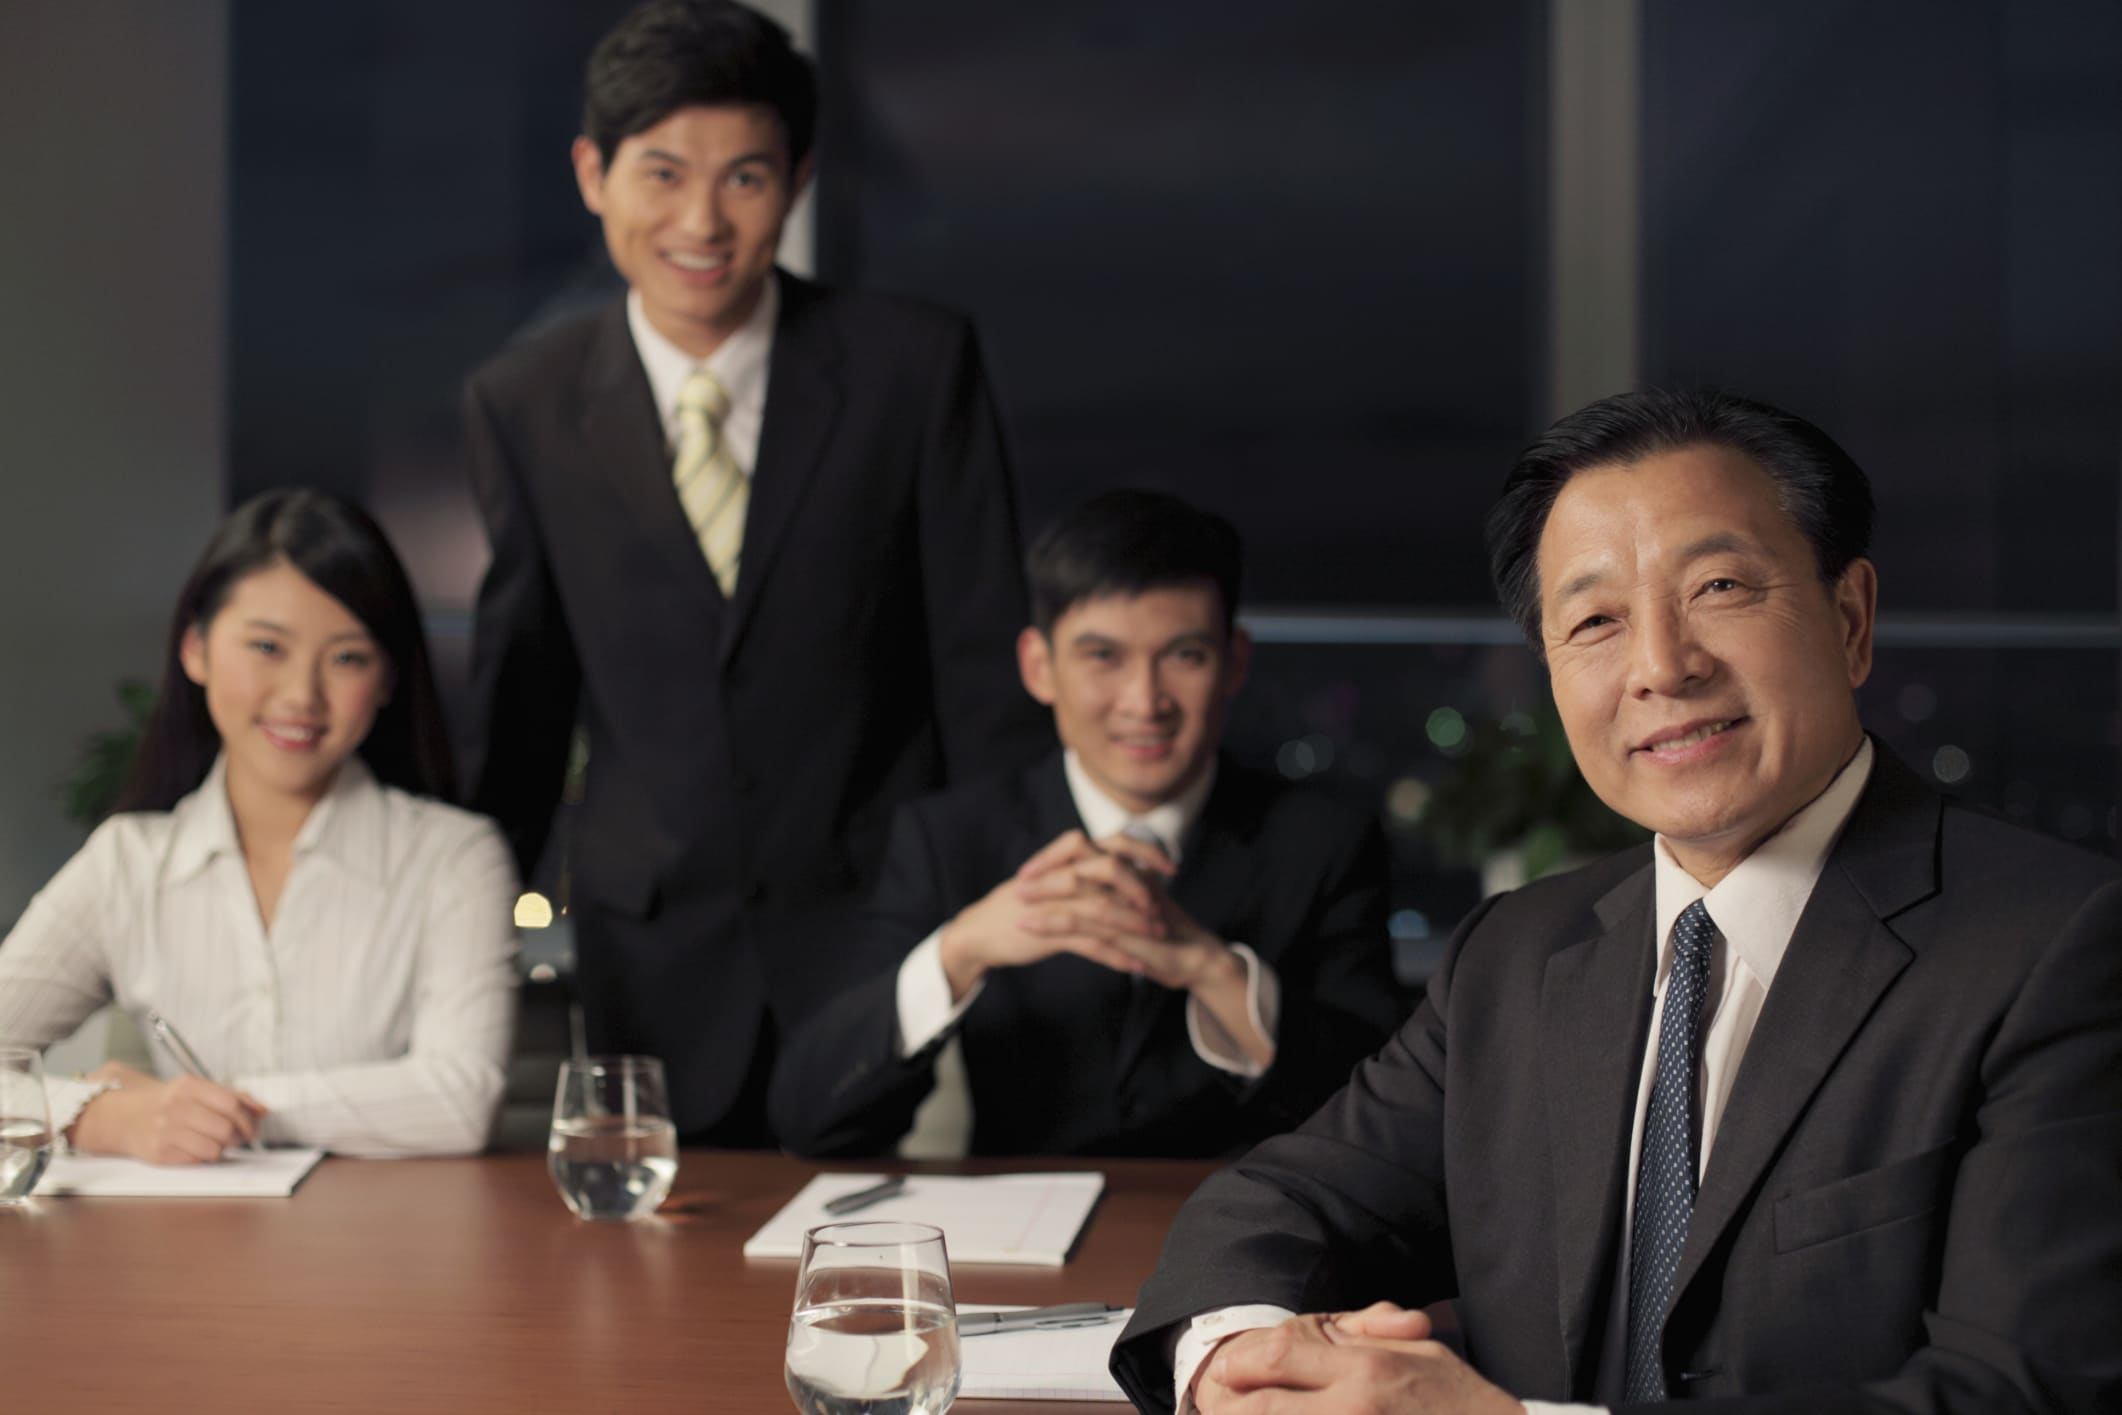 Singapore has fewer women in boardrooms than China